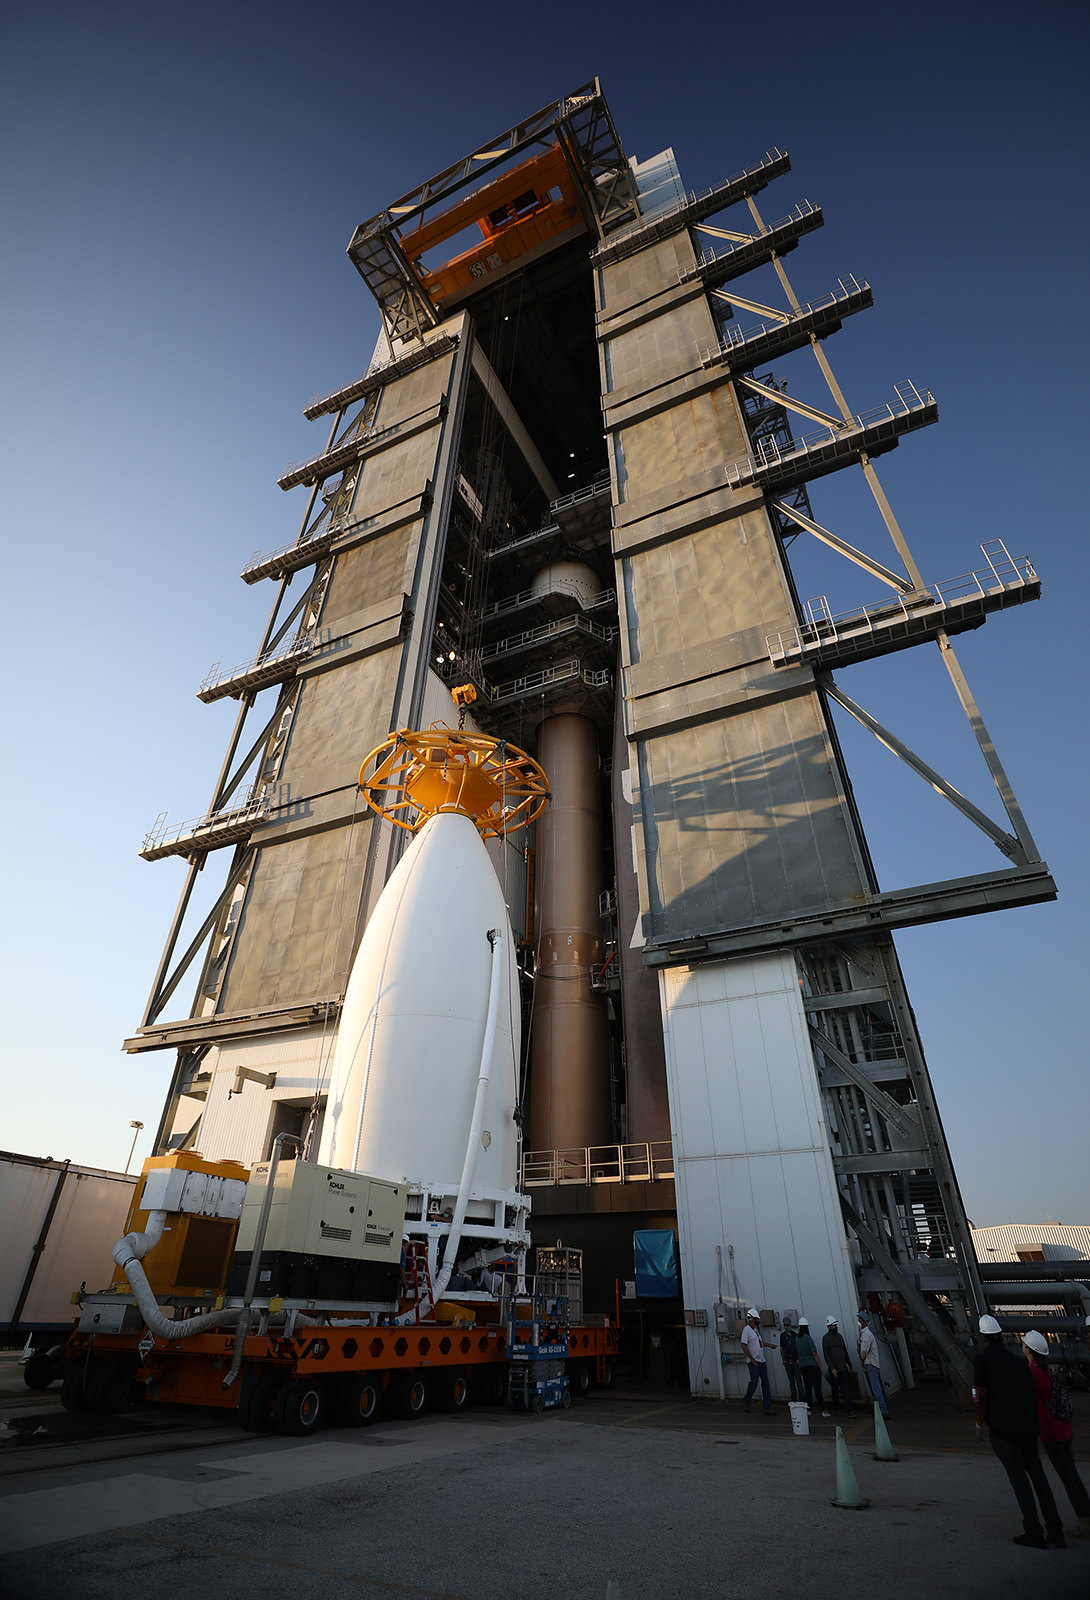 The USSF-7 payload arrives at the VIF. Photo by United Launch Alliance